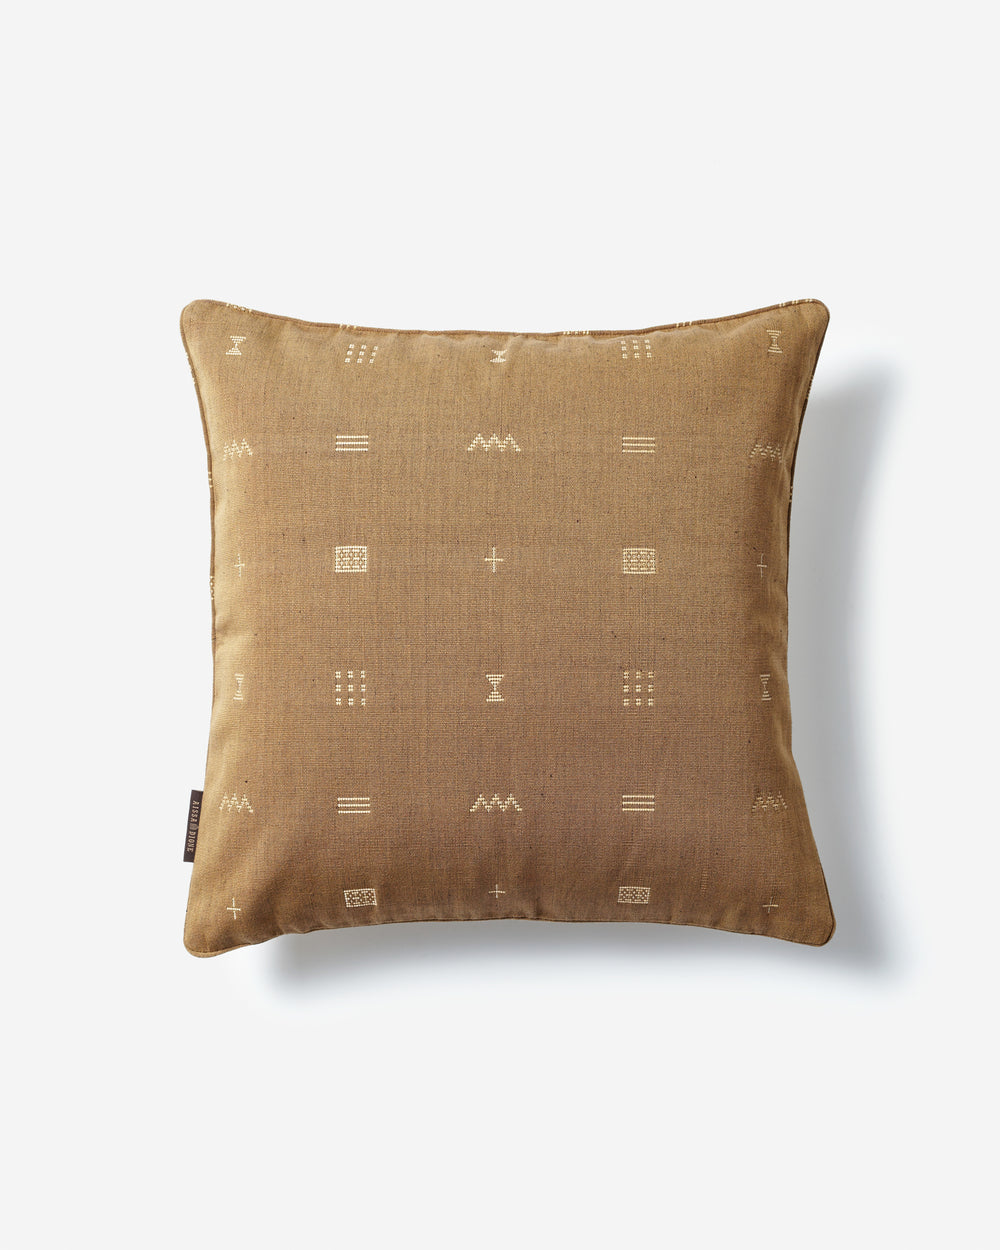 Luxury Hand-Woven Cushion – Bakel Beige